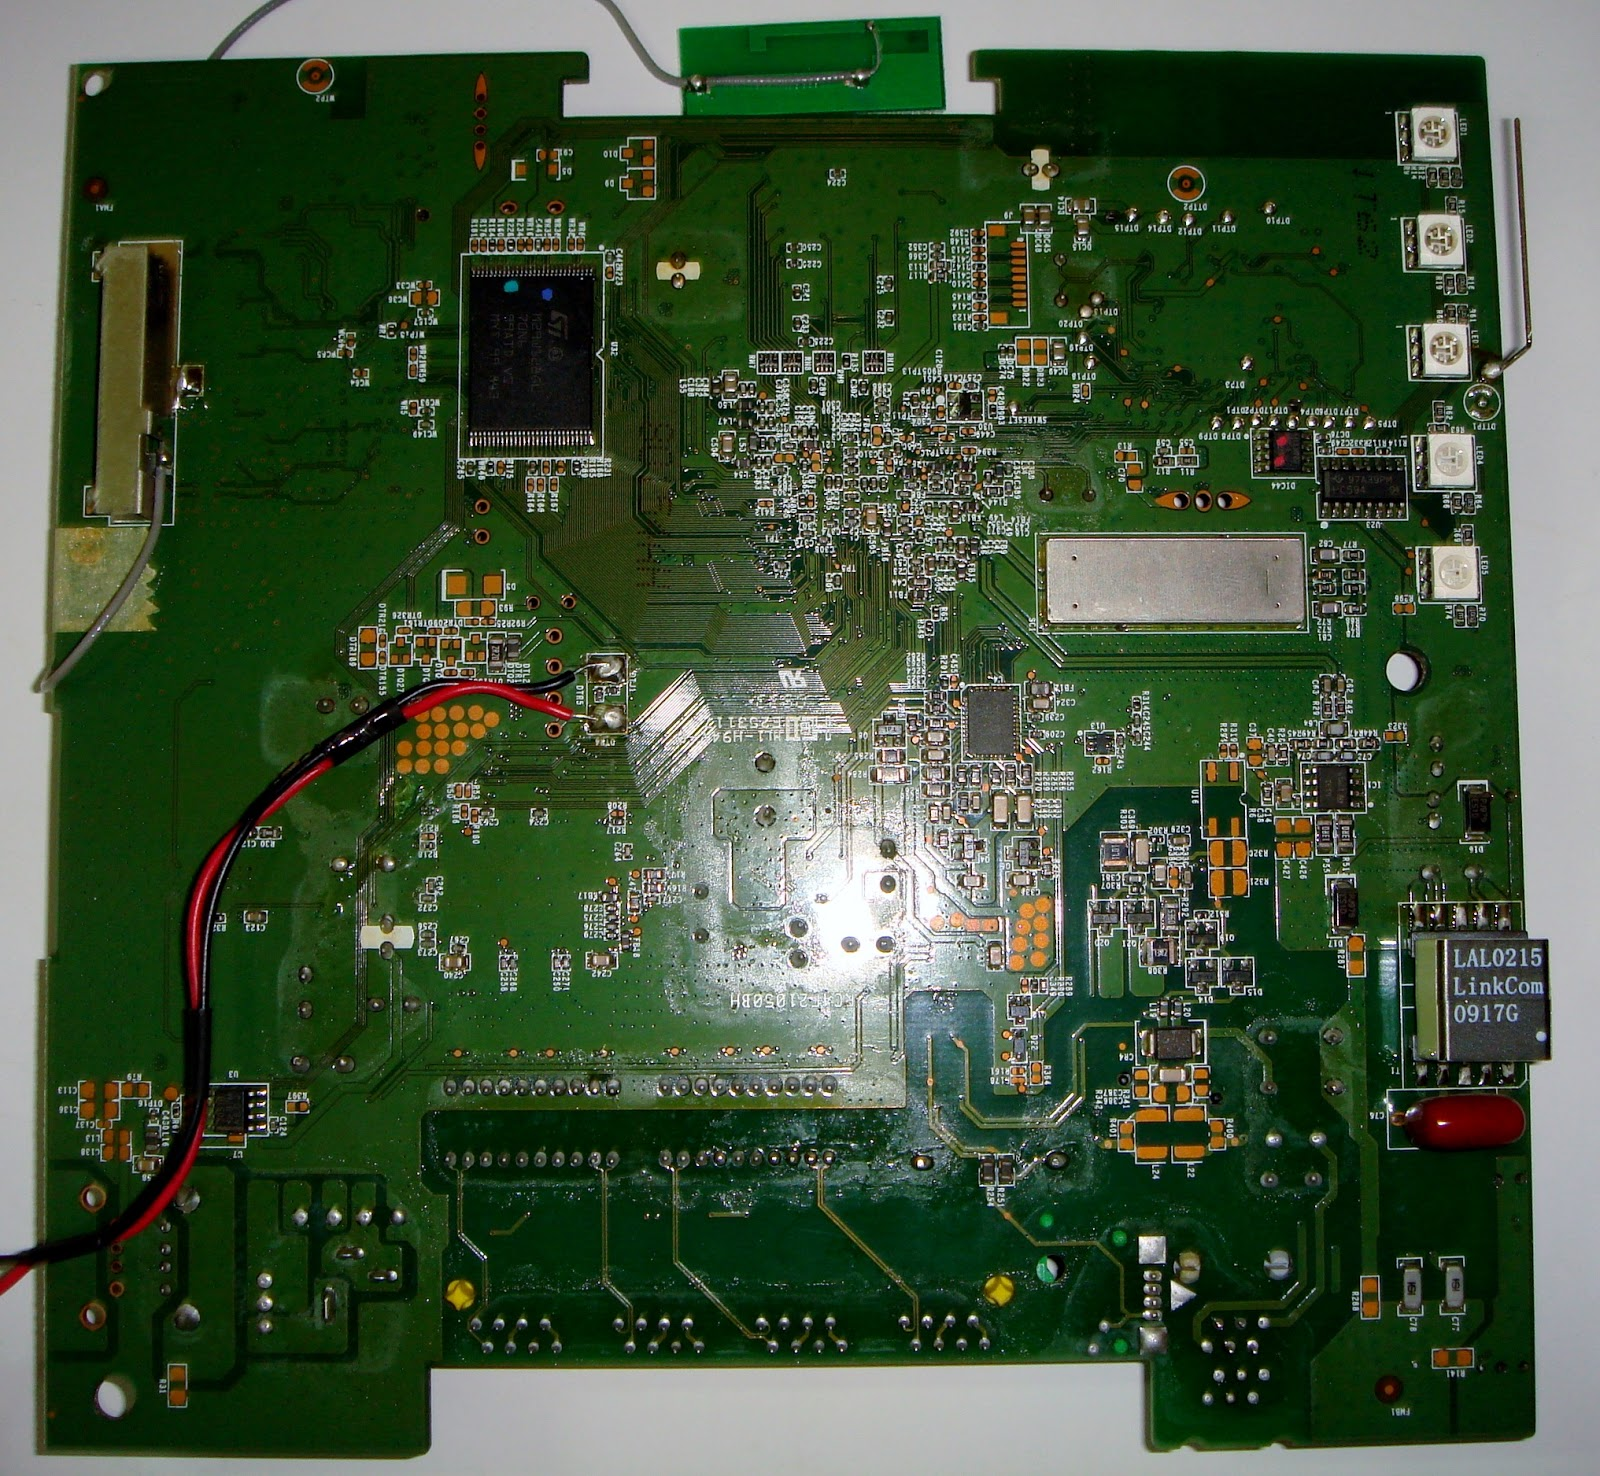 Bt Home Hub V2 Type A Info Unlock Configuration 5 Wiring Diagram Next Up Is The Adsl Wireless Router By Thomson Technicolor More At Openwrt Wiki Again This Accepts Only